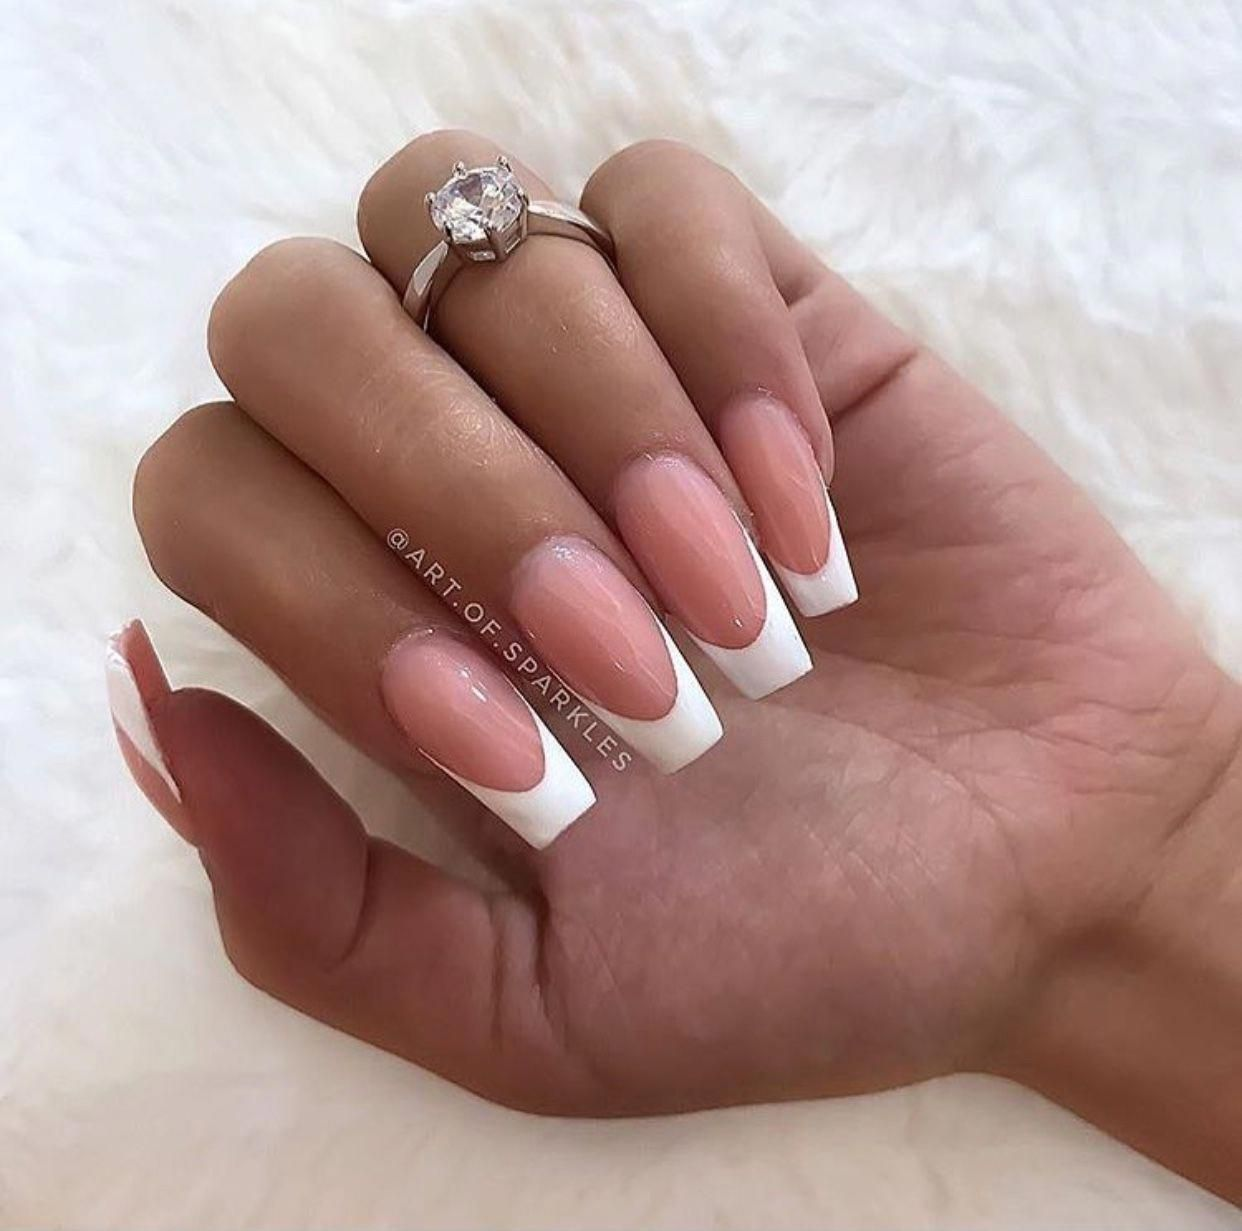 Pin On 21 St Birthday In 2020 French Tip Acrylic Nails French Acrylic Nails White Tip Nails